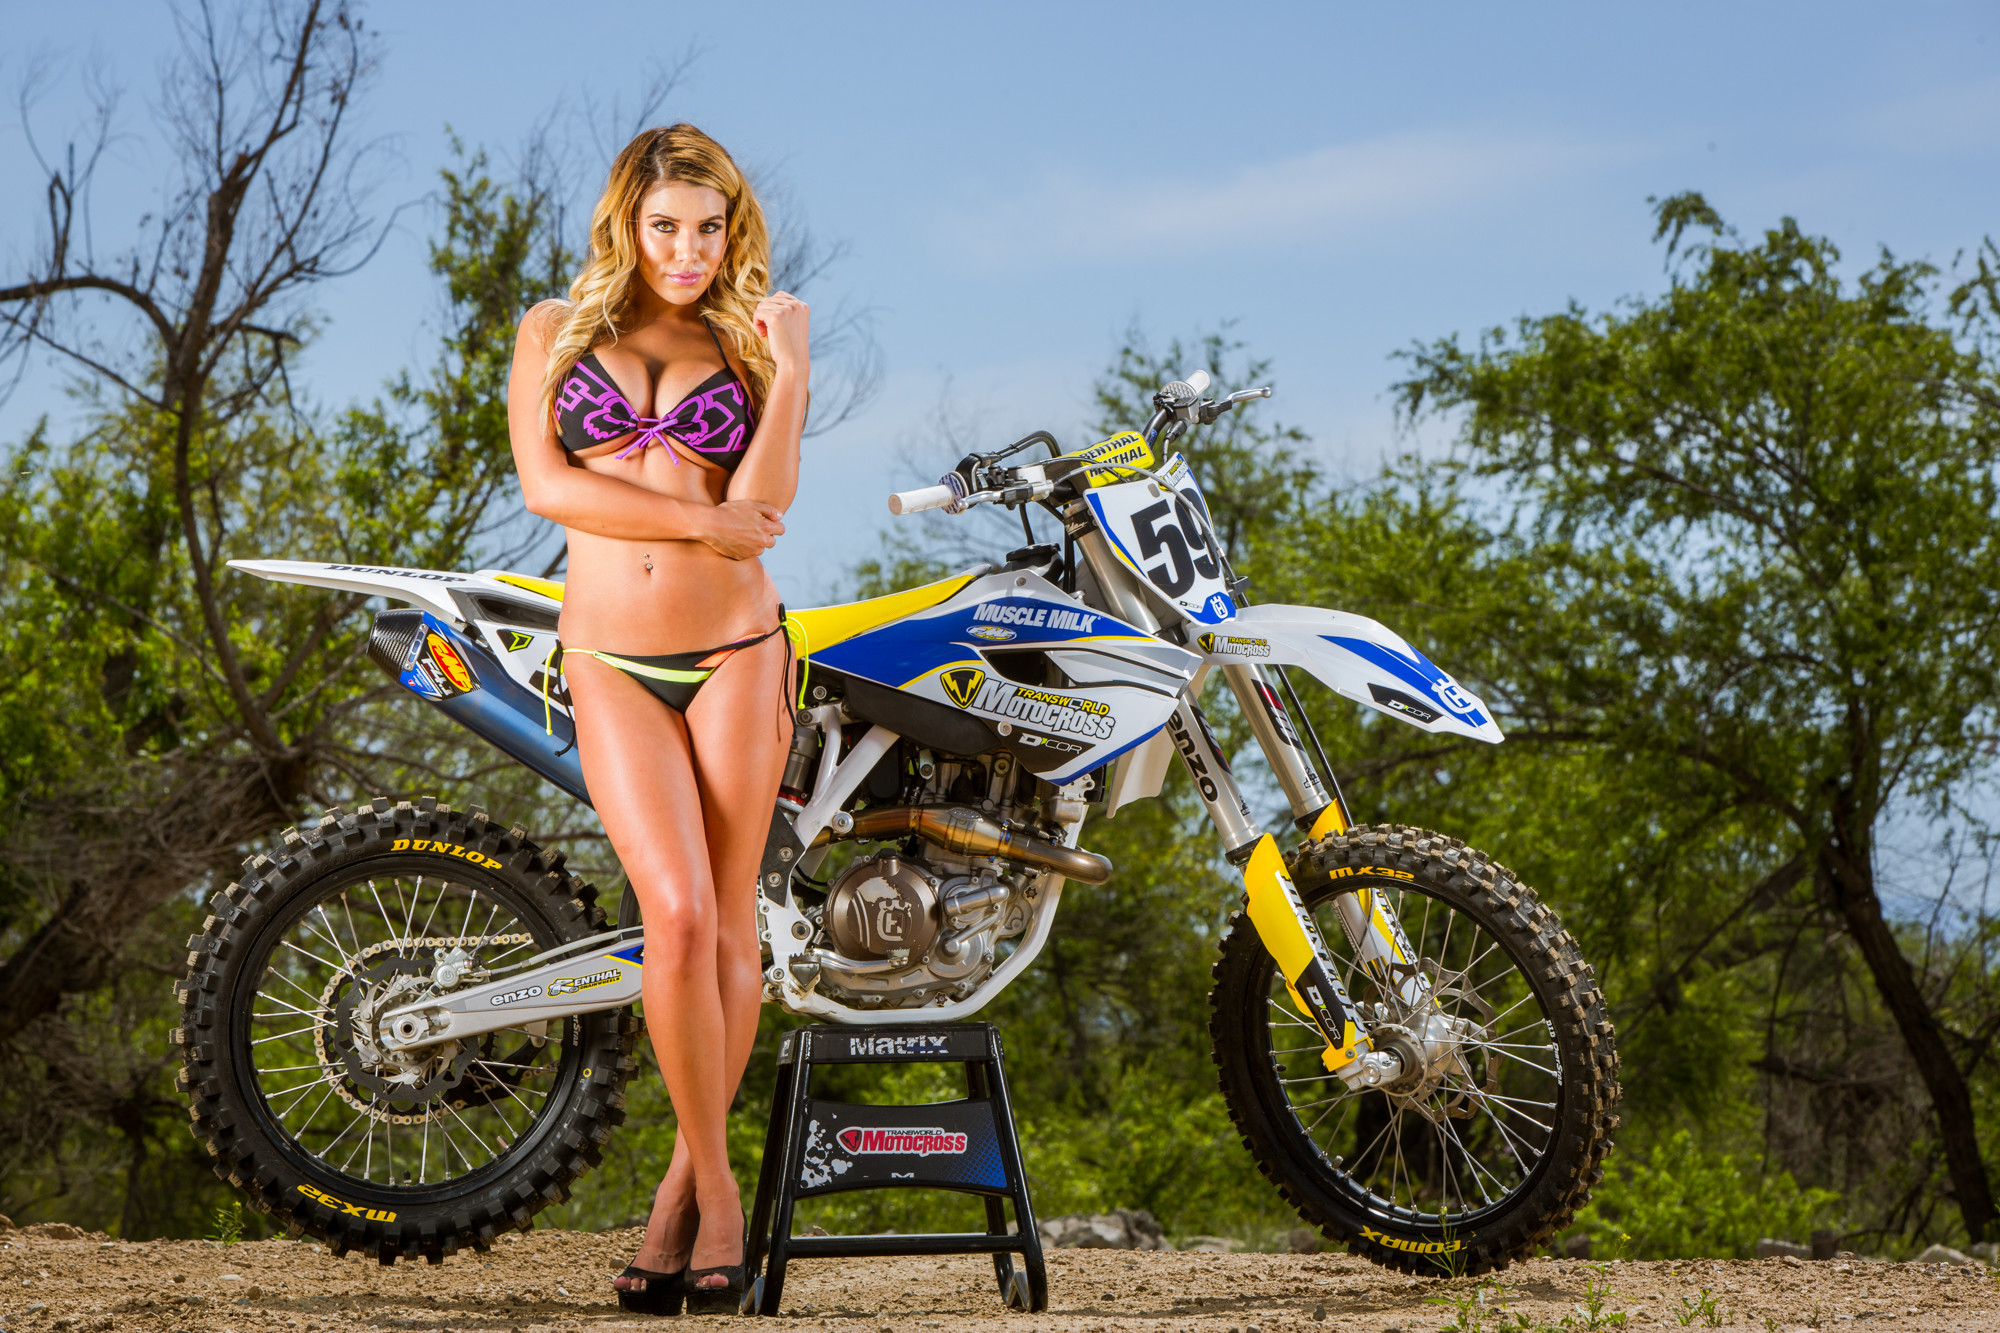 girls naked on dirt motorbikes